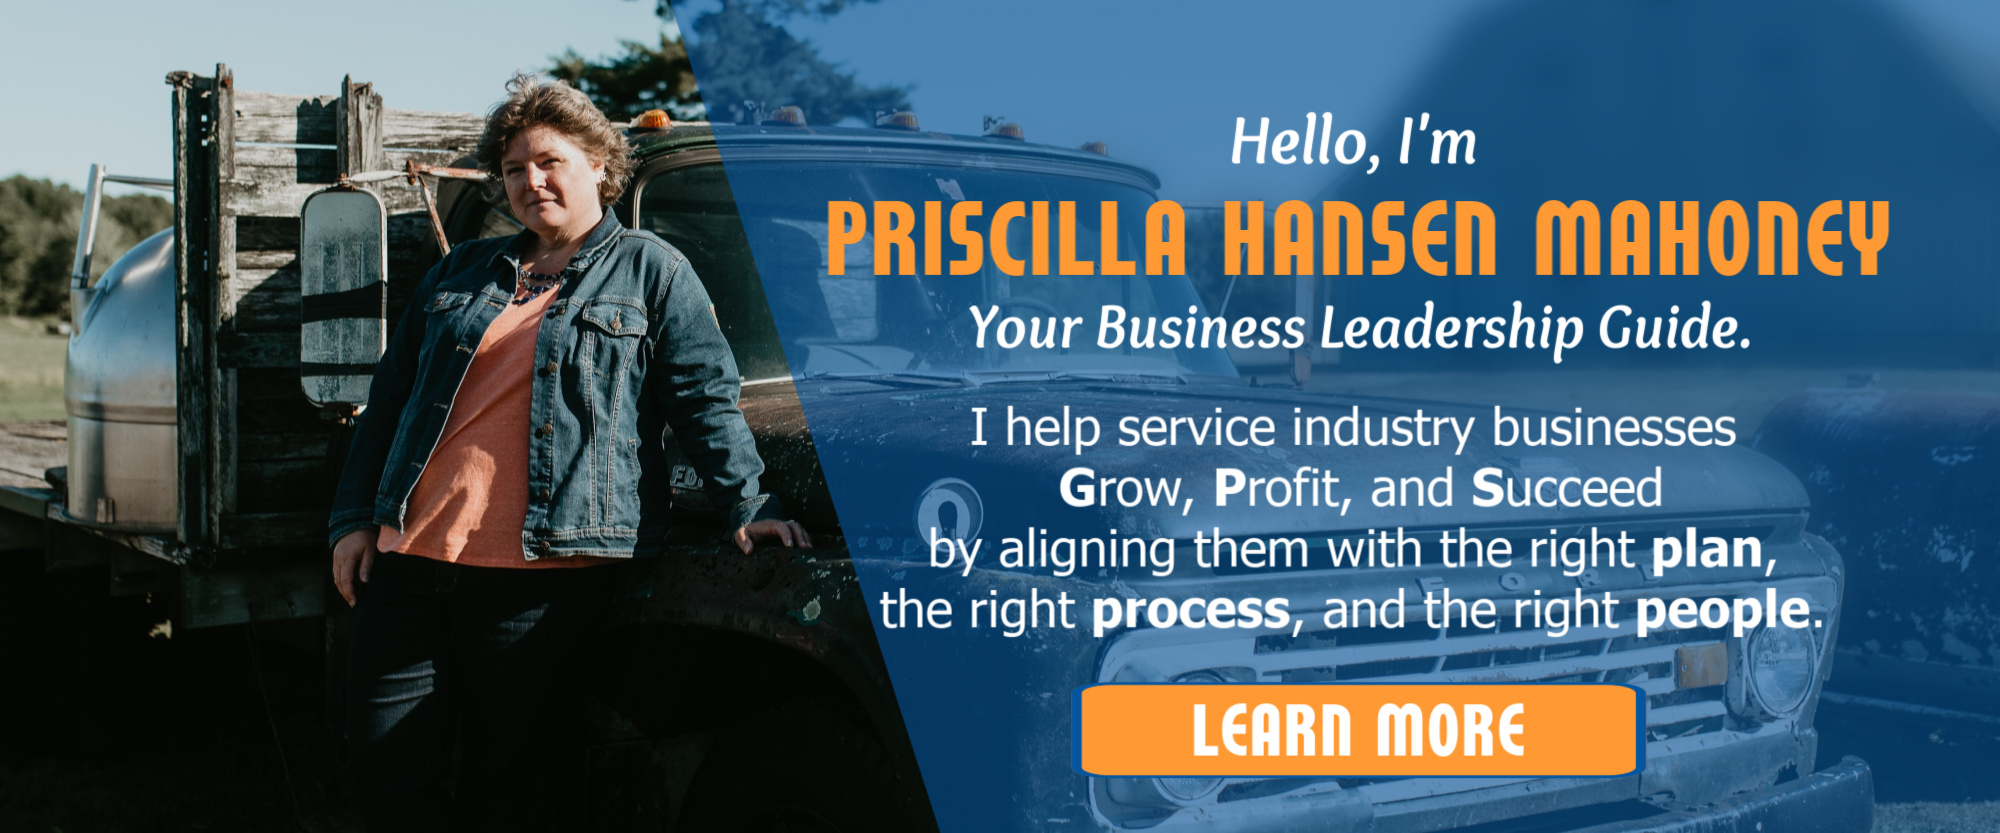 Service Industry Business Coach Consultant Priscilla Hansen Mahoney